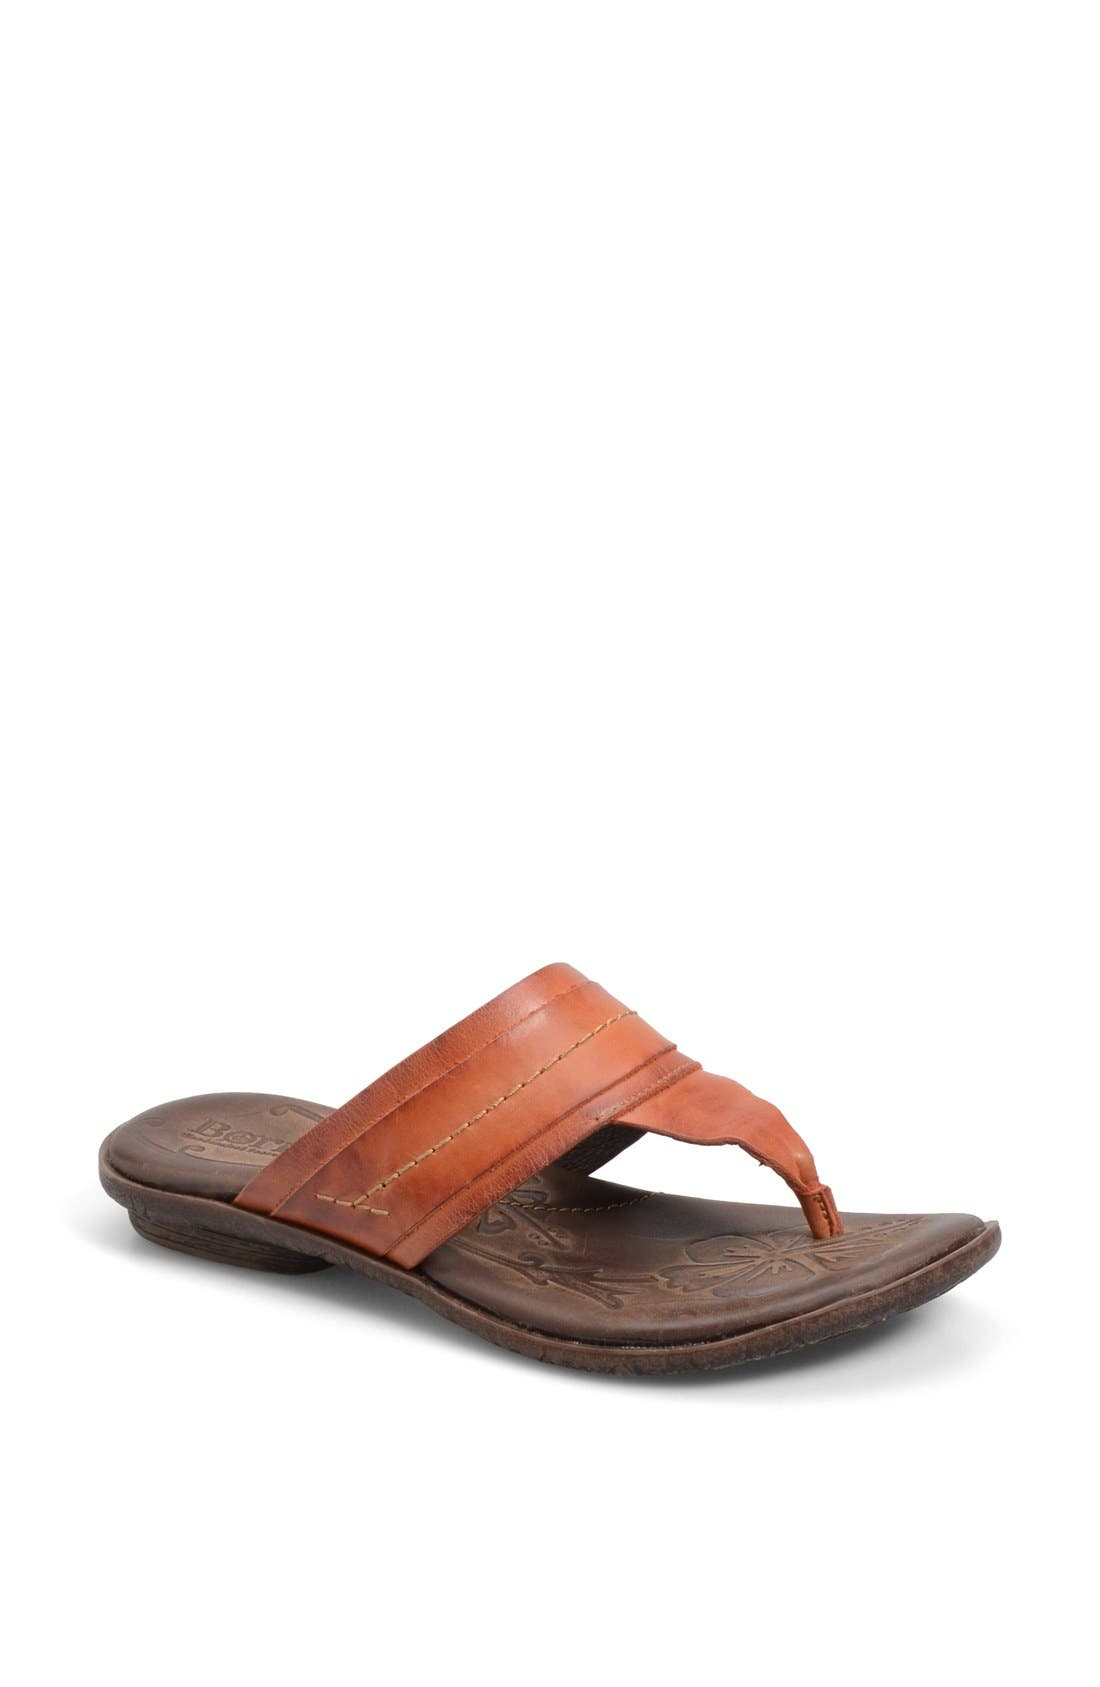 Alternate Image 1 Selected - Børn 'Tai' Sandal (Women)